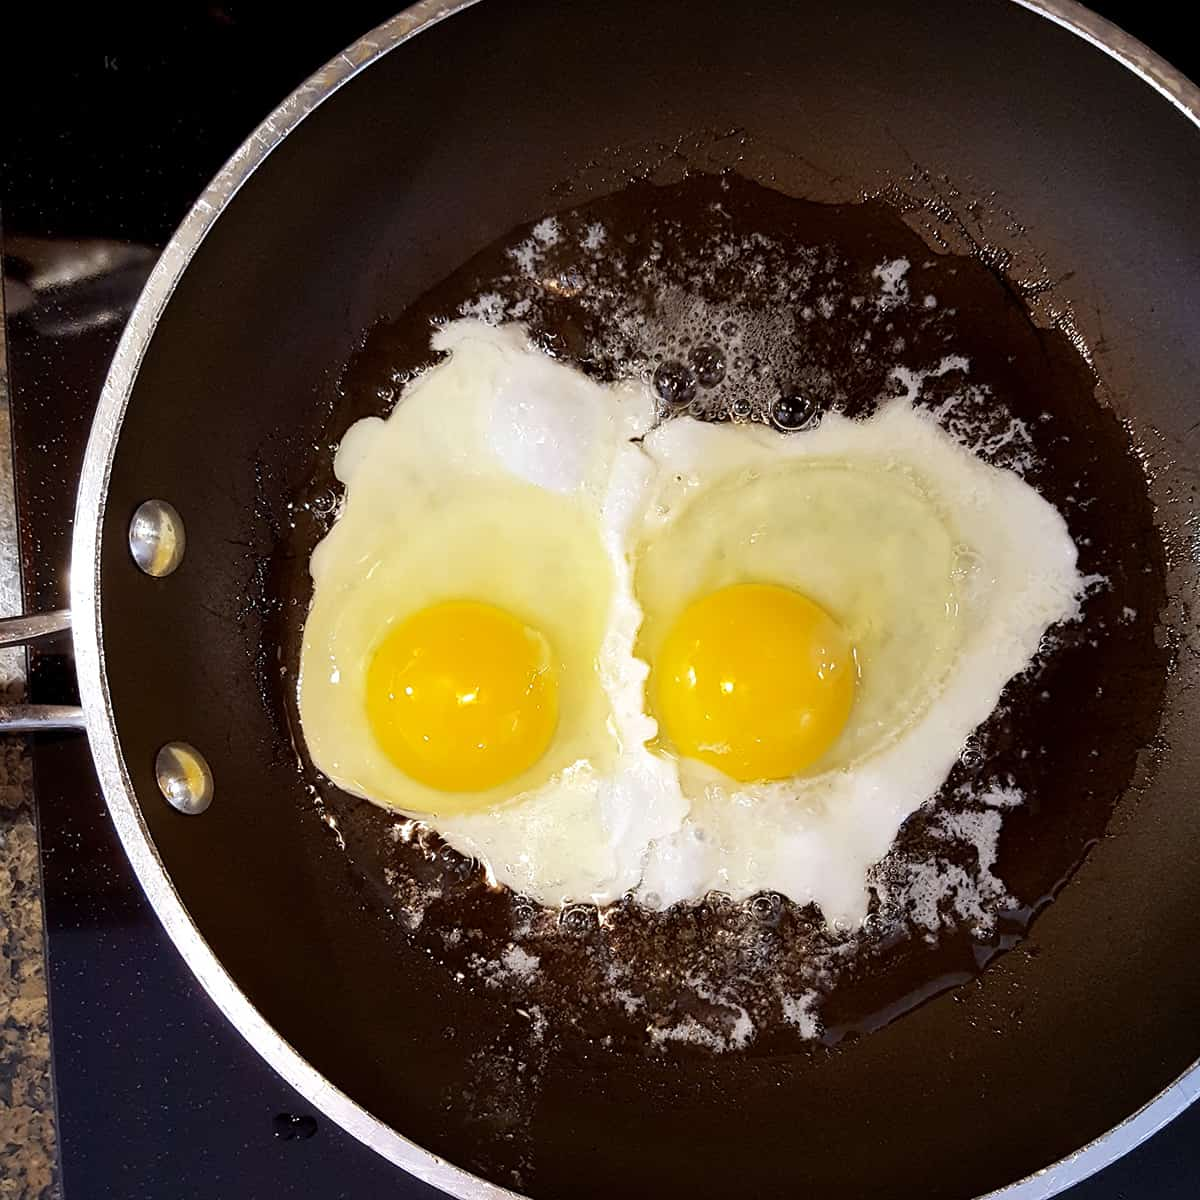 Two eggs cooking in a skillet with butter and oil.